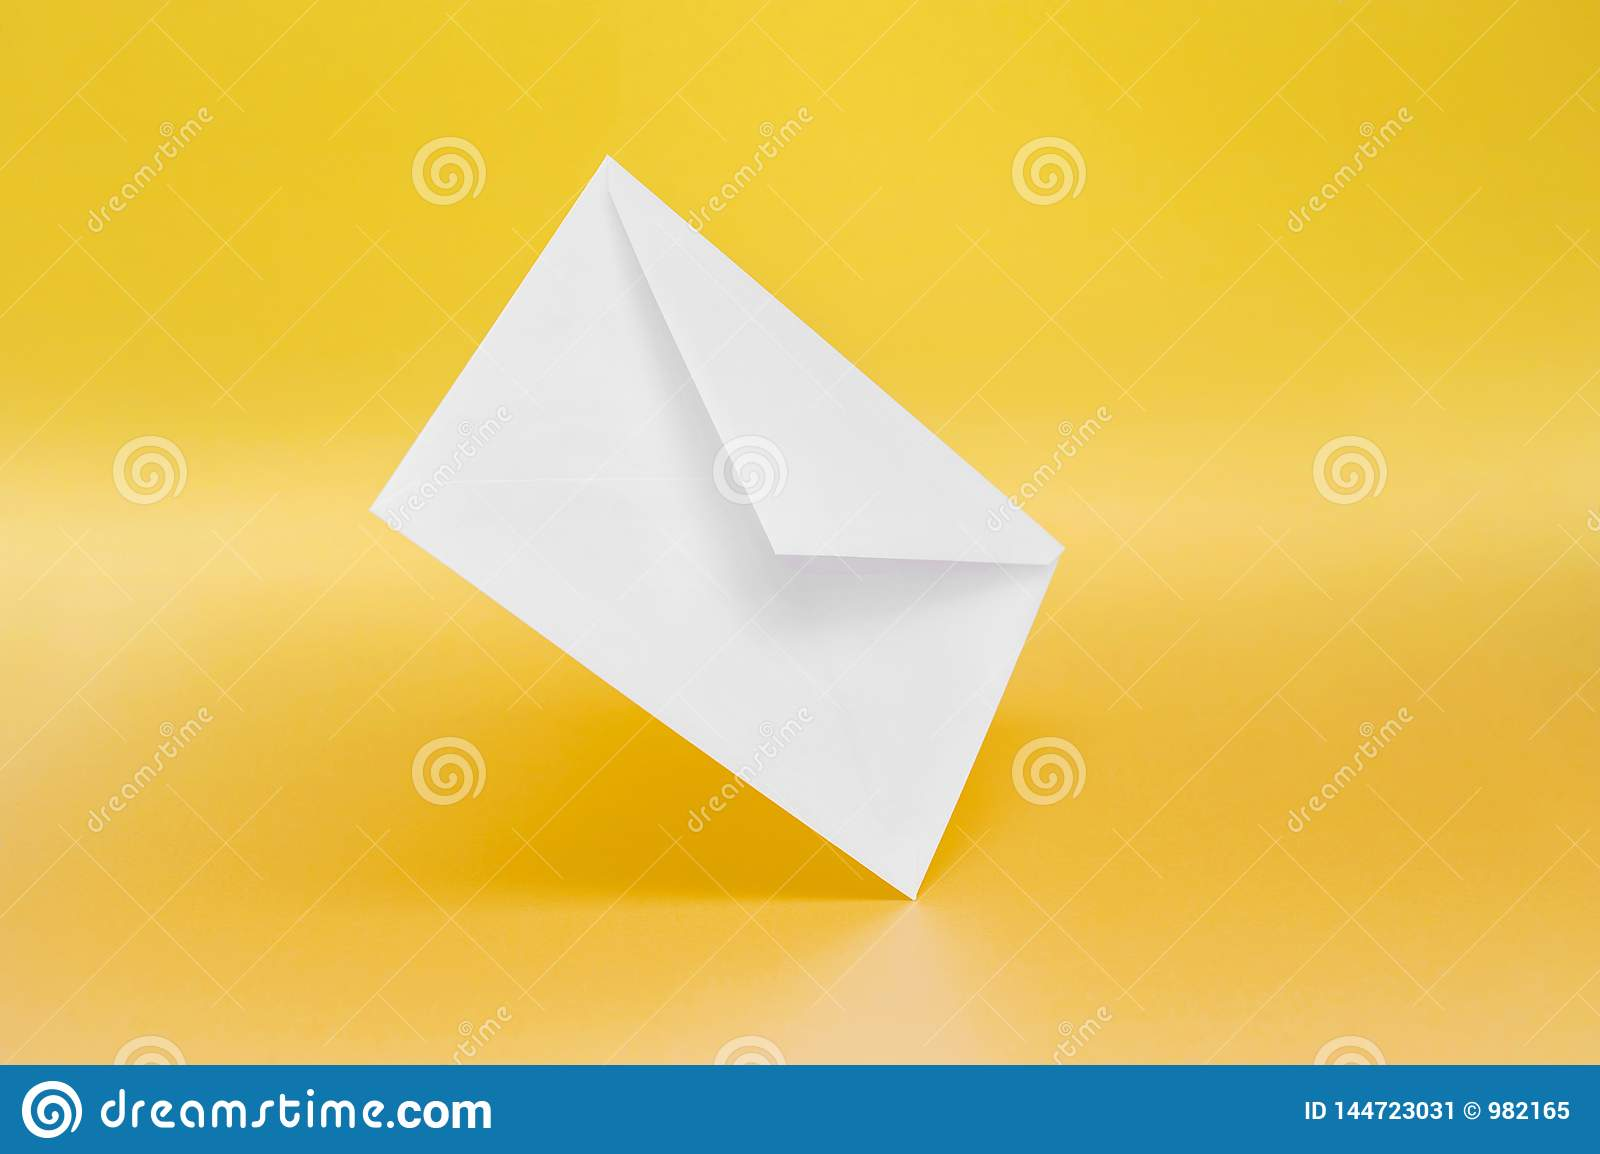 Empty paper envelope on yellow background